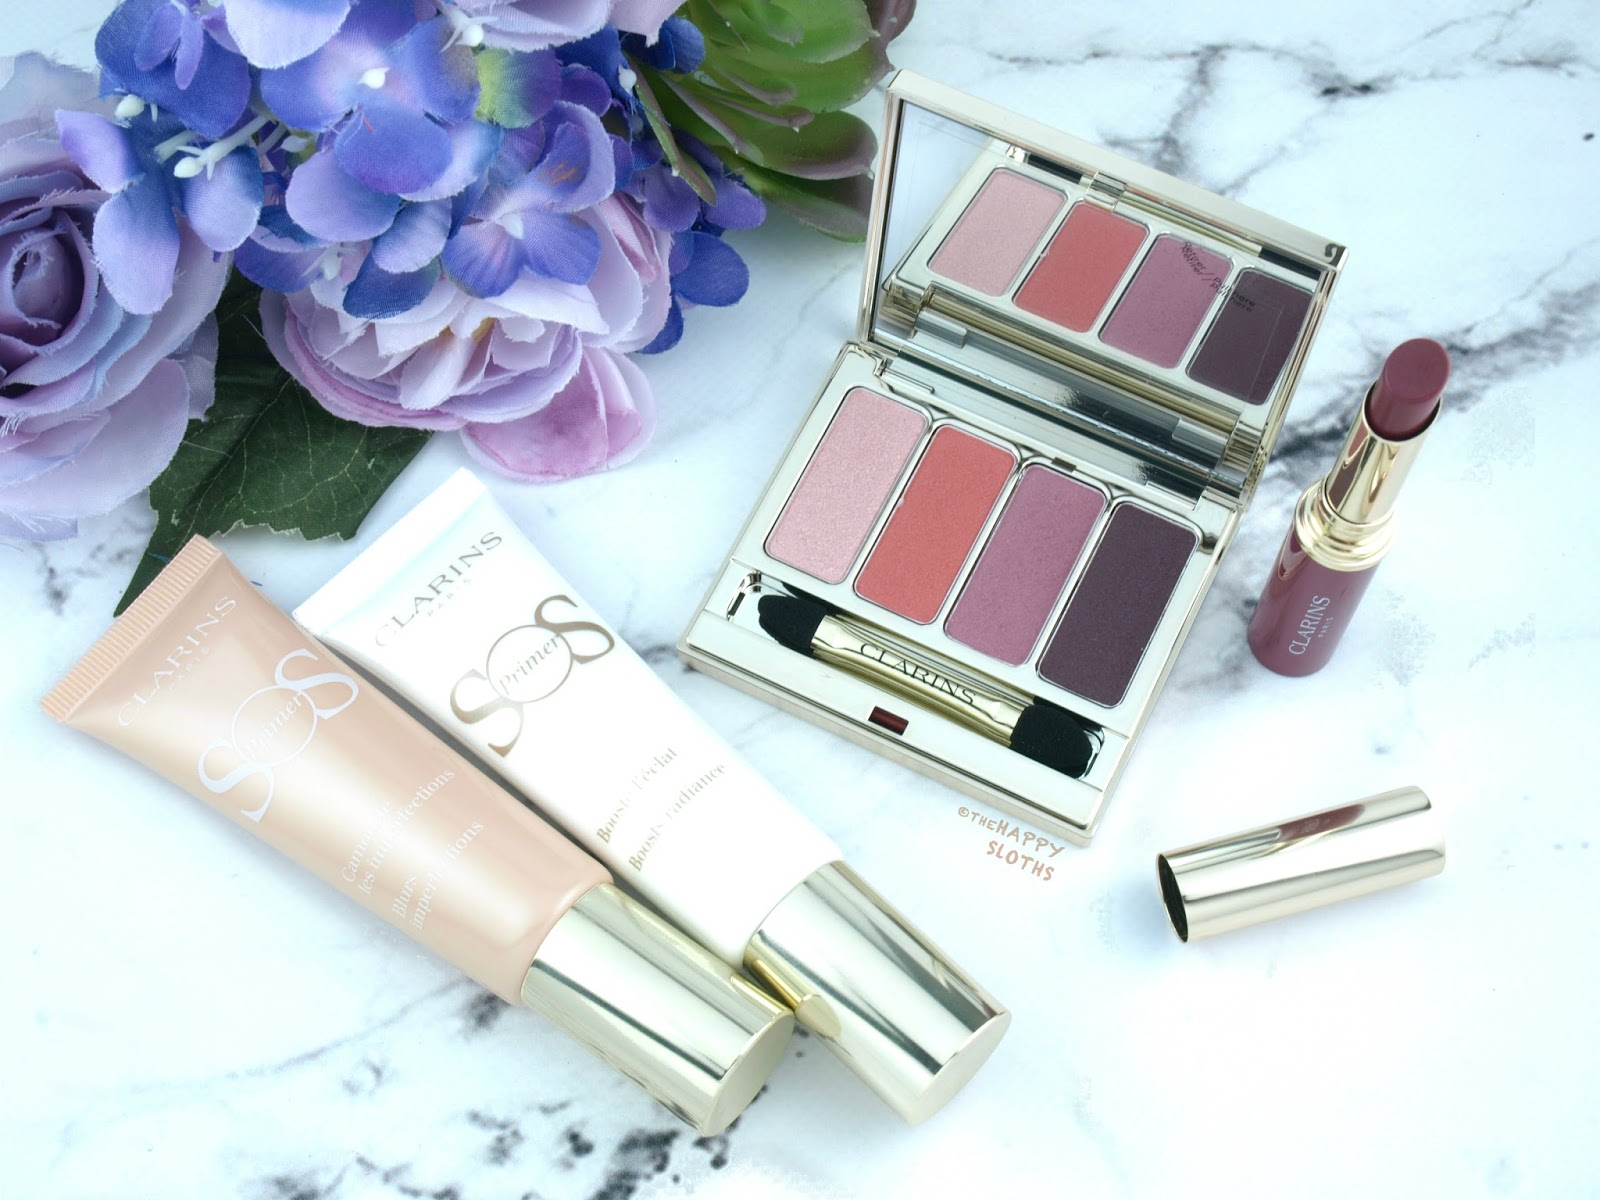 Clarins Spring 2018 Collection: Review and Swatches